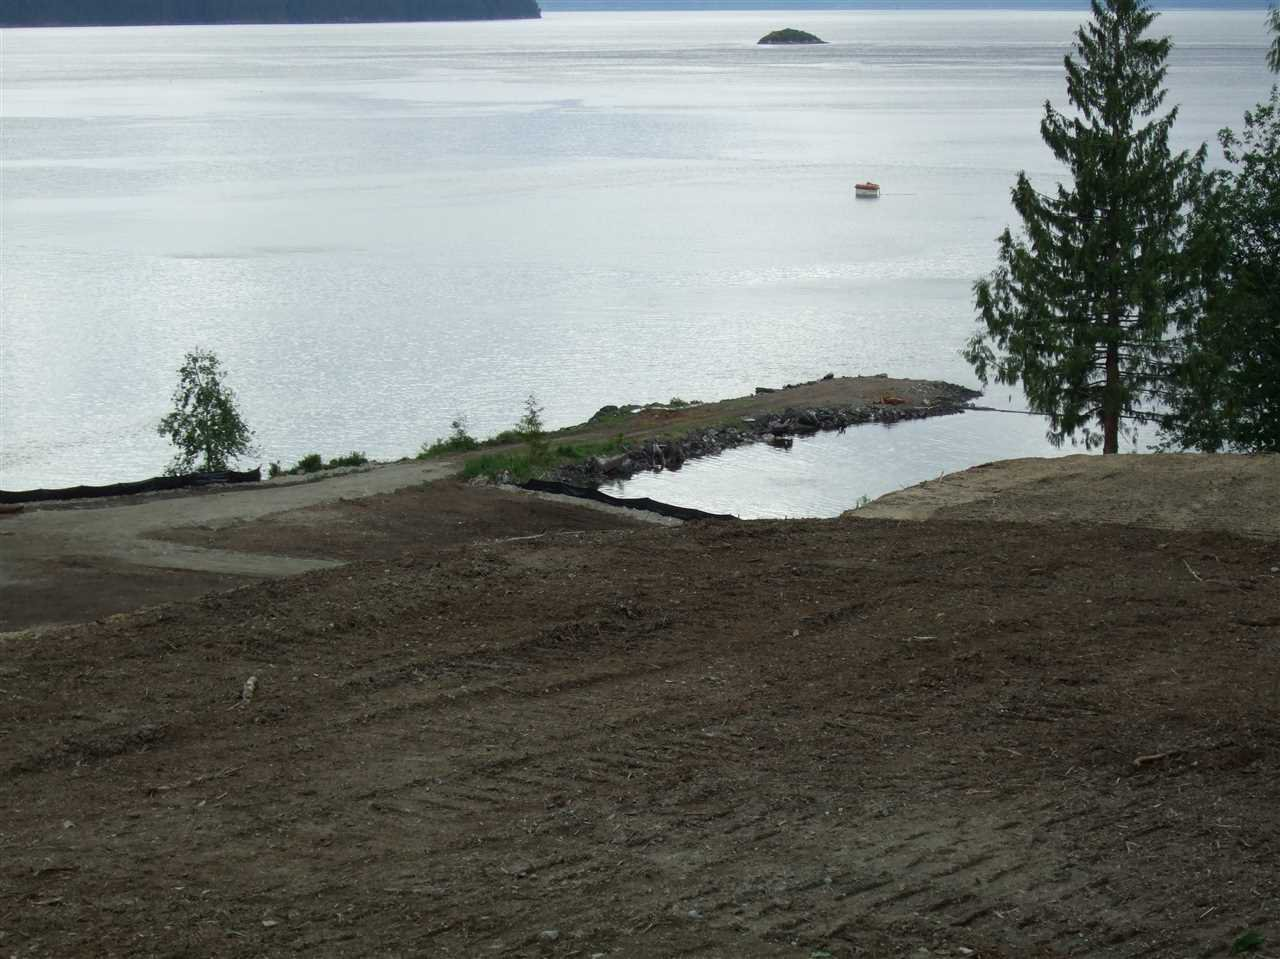 Photo 3: Photos: DL 5658 KILLAM BAY in Egmont: Pender Harbour Egmont Land for sale (Sunshine Coast)  : MLS®# R2402613